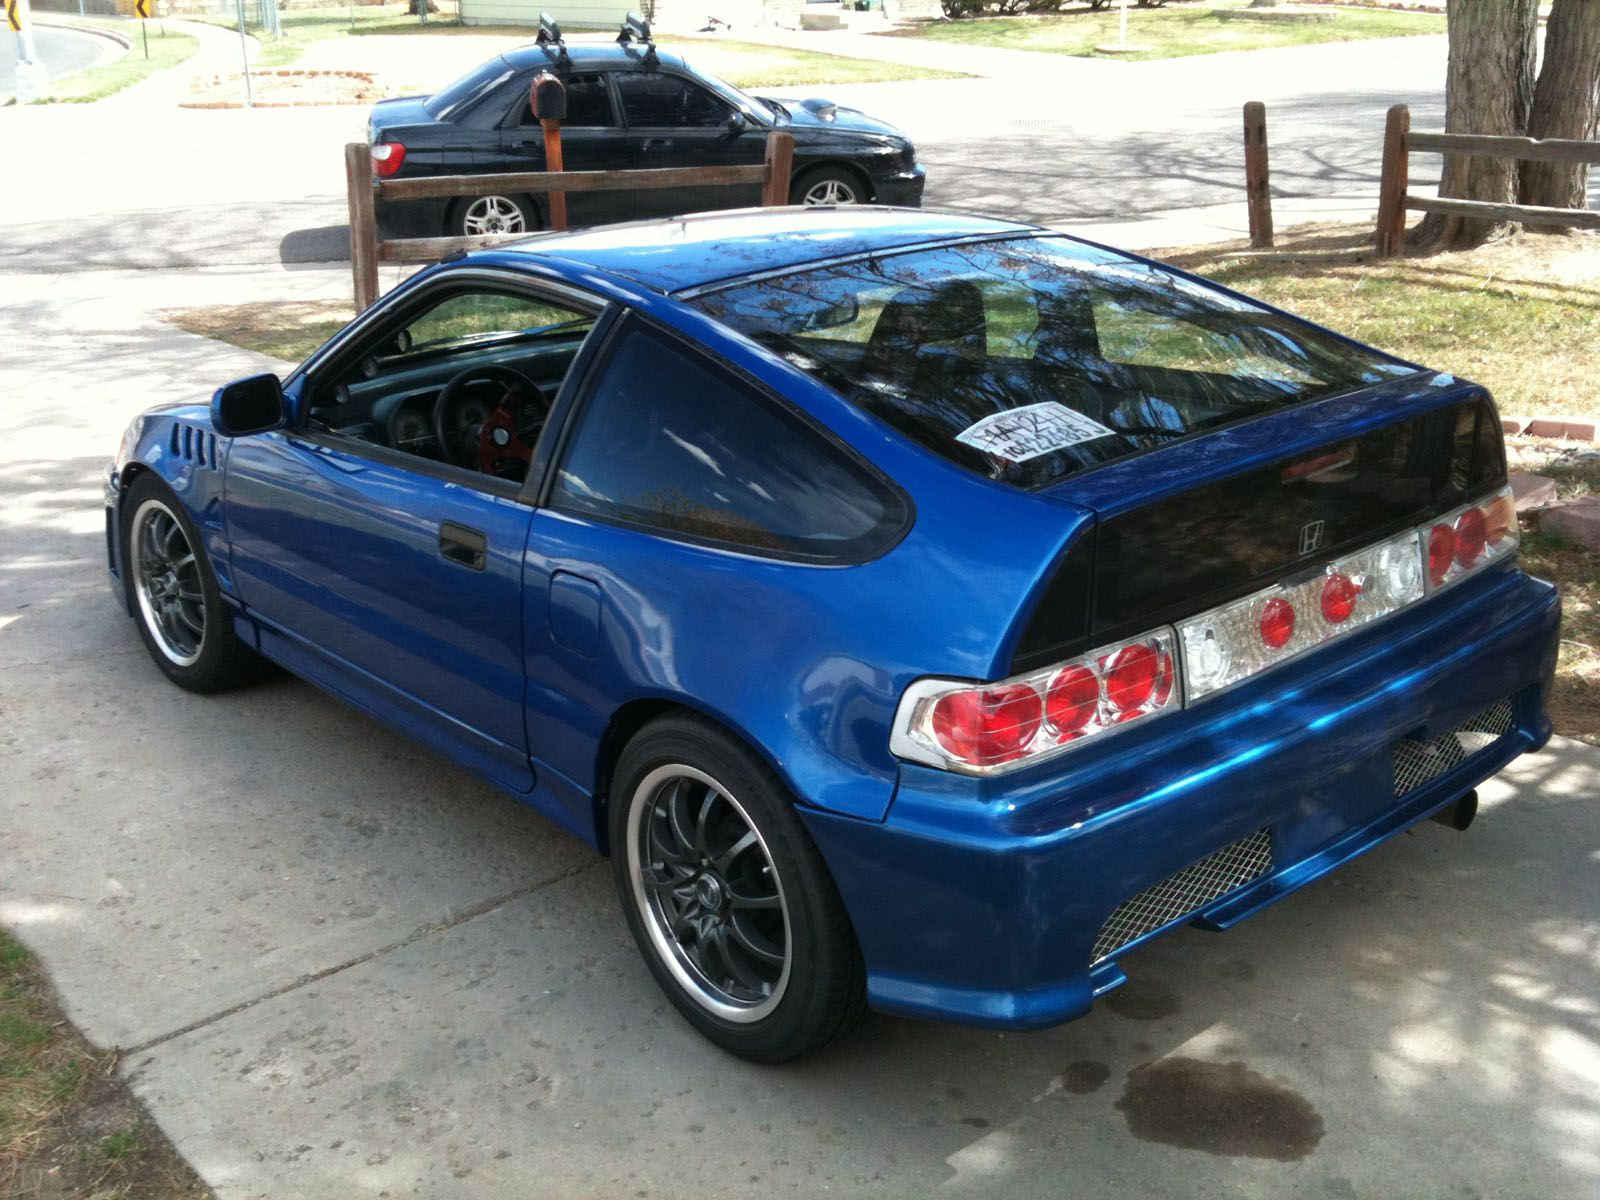 medium resolution of 89 honda crx hatchback that is one of the sickest cars i have ever seen i cried a little